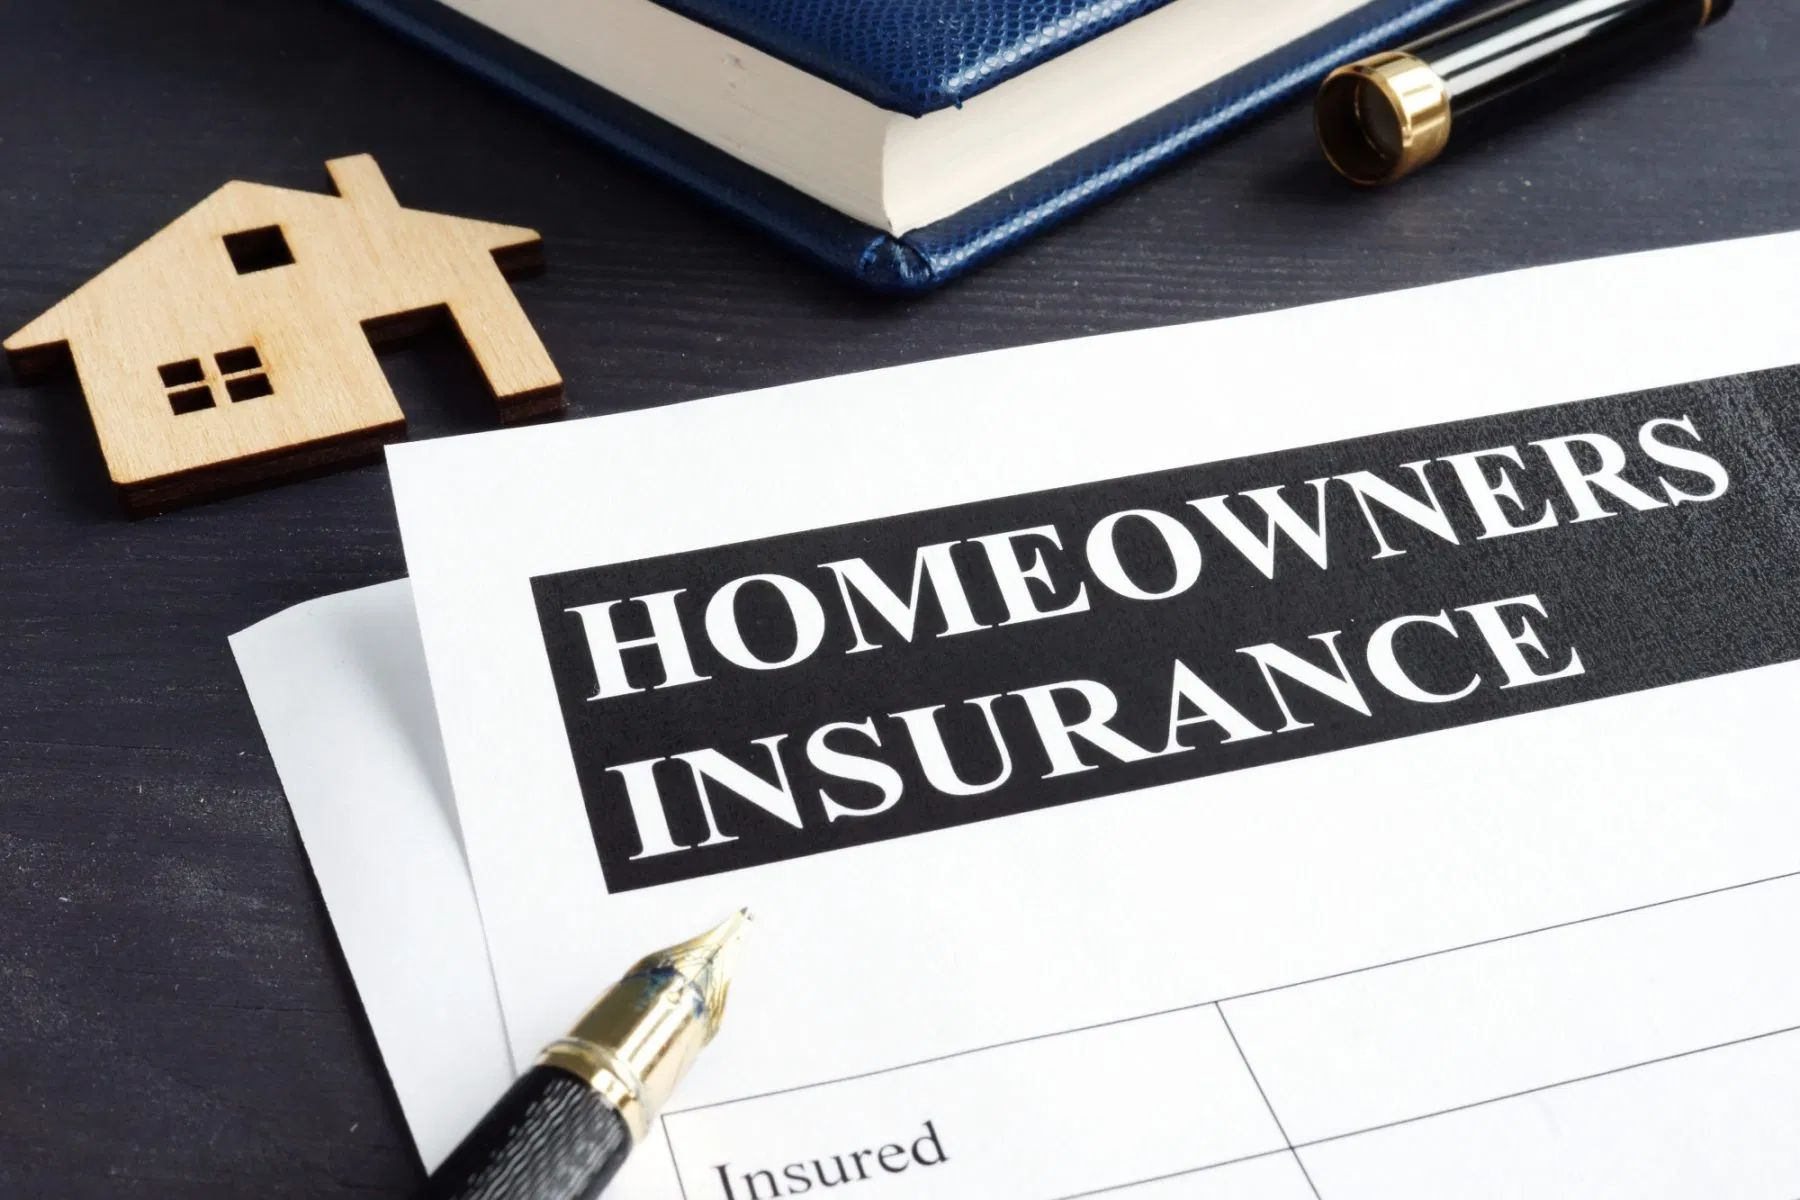 Can I get Homeowners Insurance in TX During Hurricane Season?